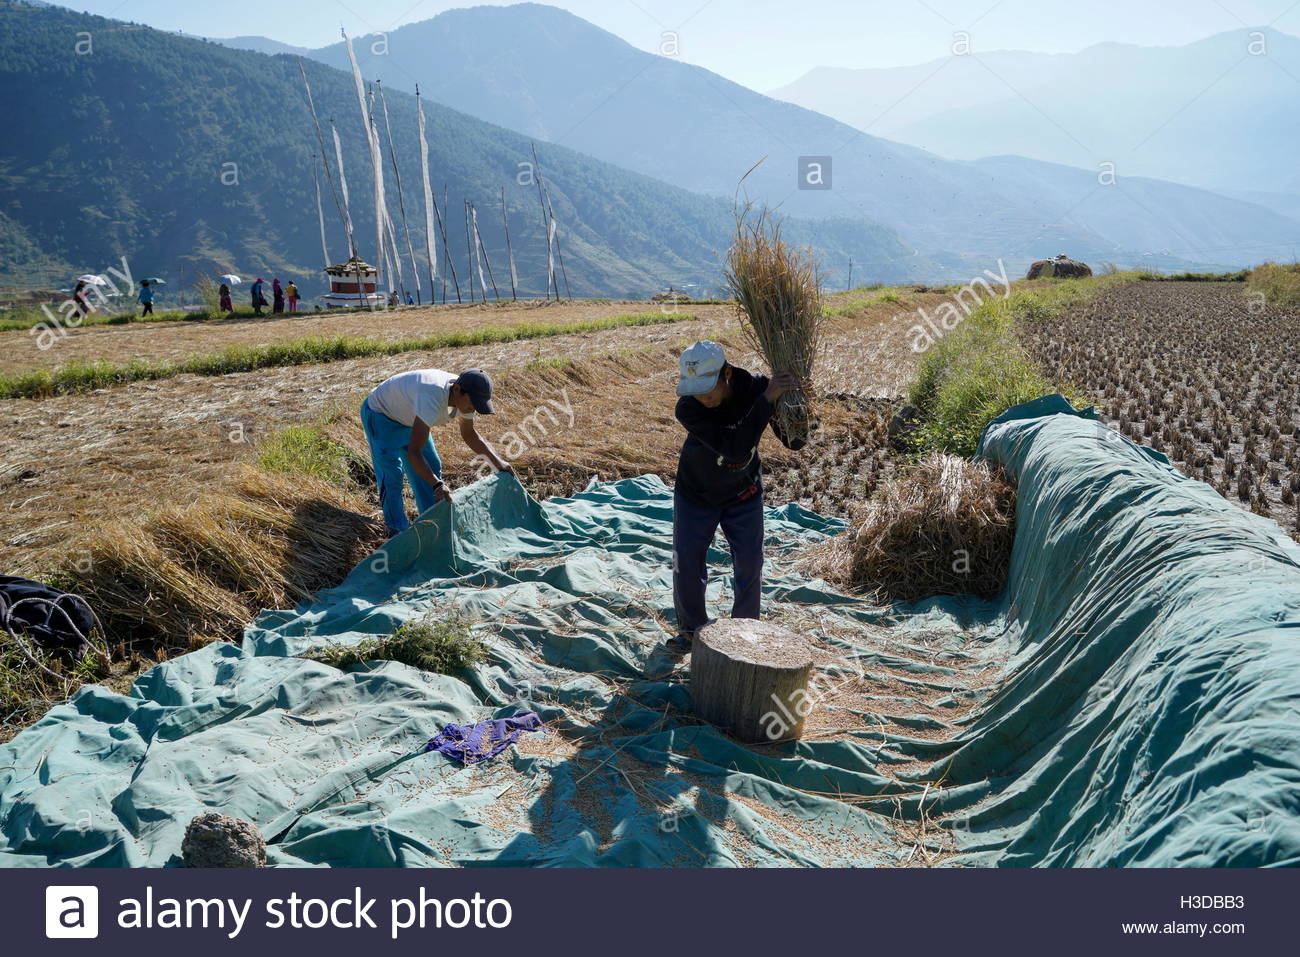 People working at rice fields near the Chime Lhakhang Monastery in Punakha District, Bhutan. Stock Photo